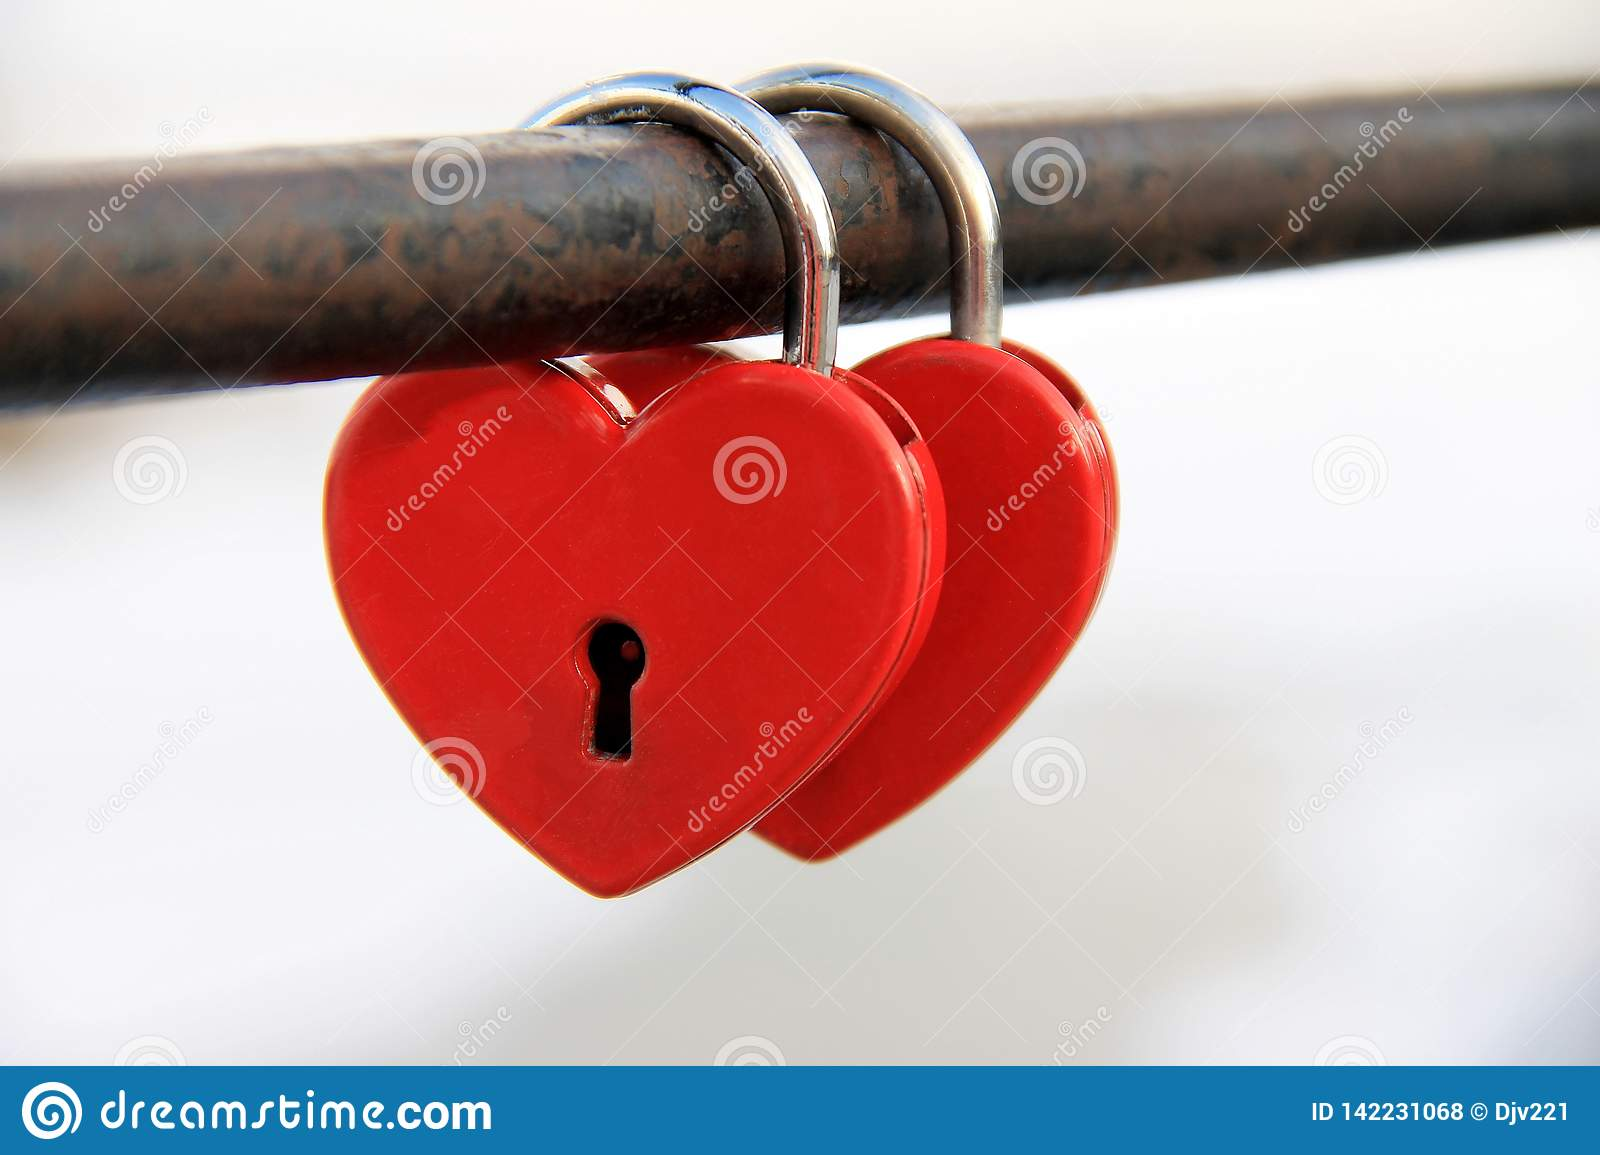 Two padlocks in the shape of hearts snapped onto the pipe